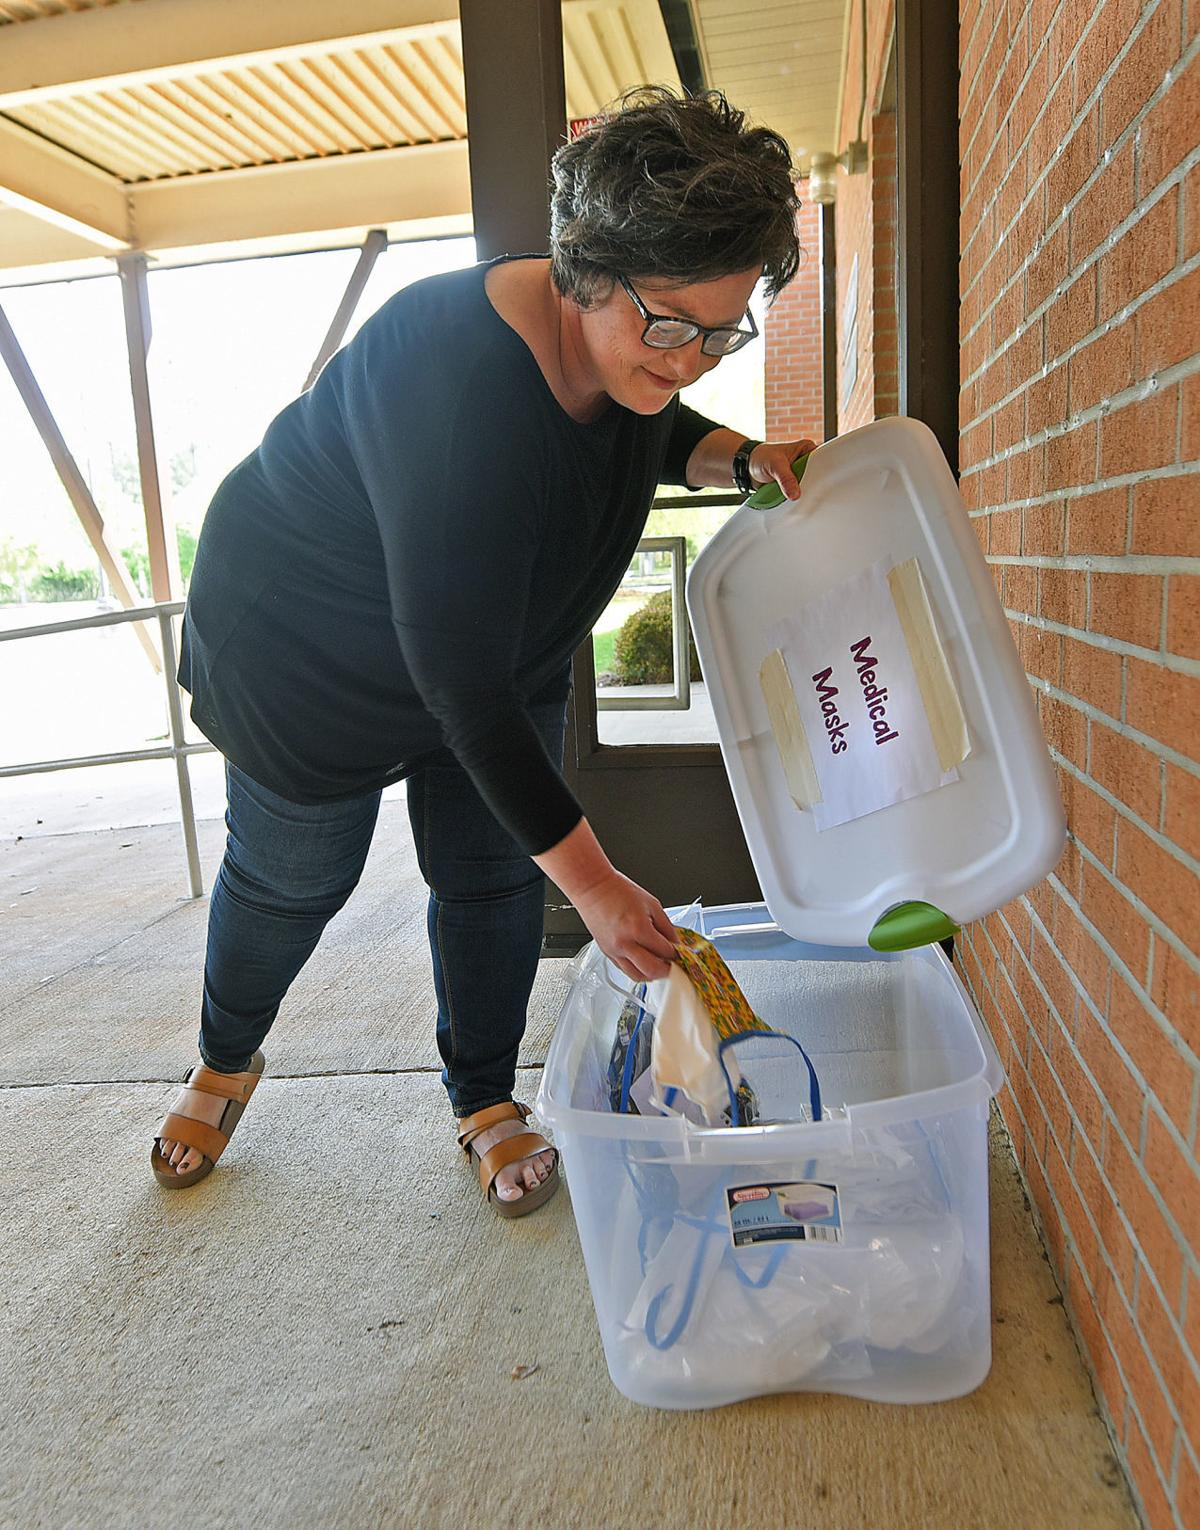 Local churches answering need for surgical masks